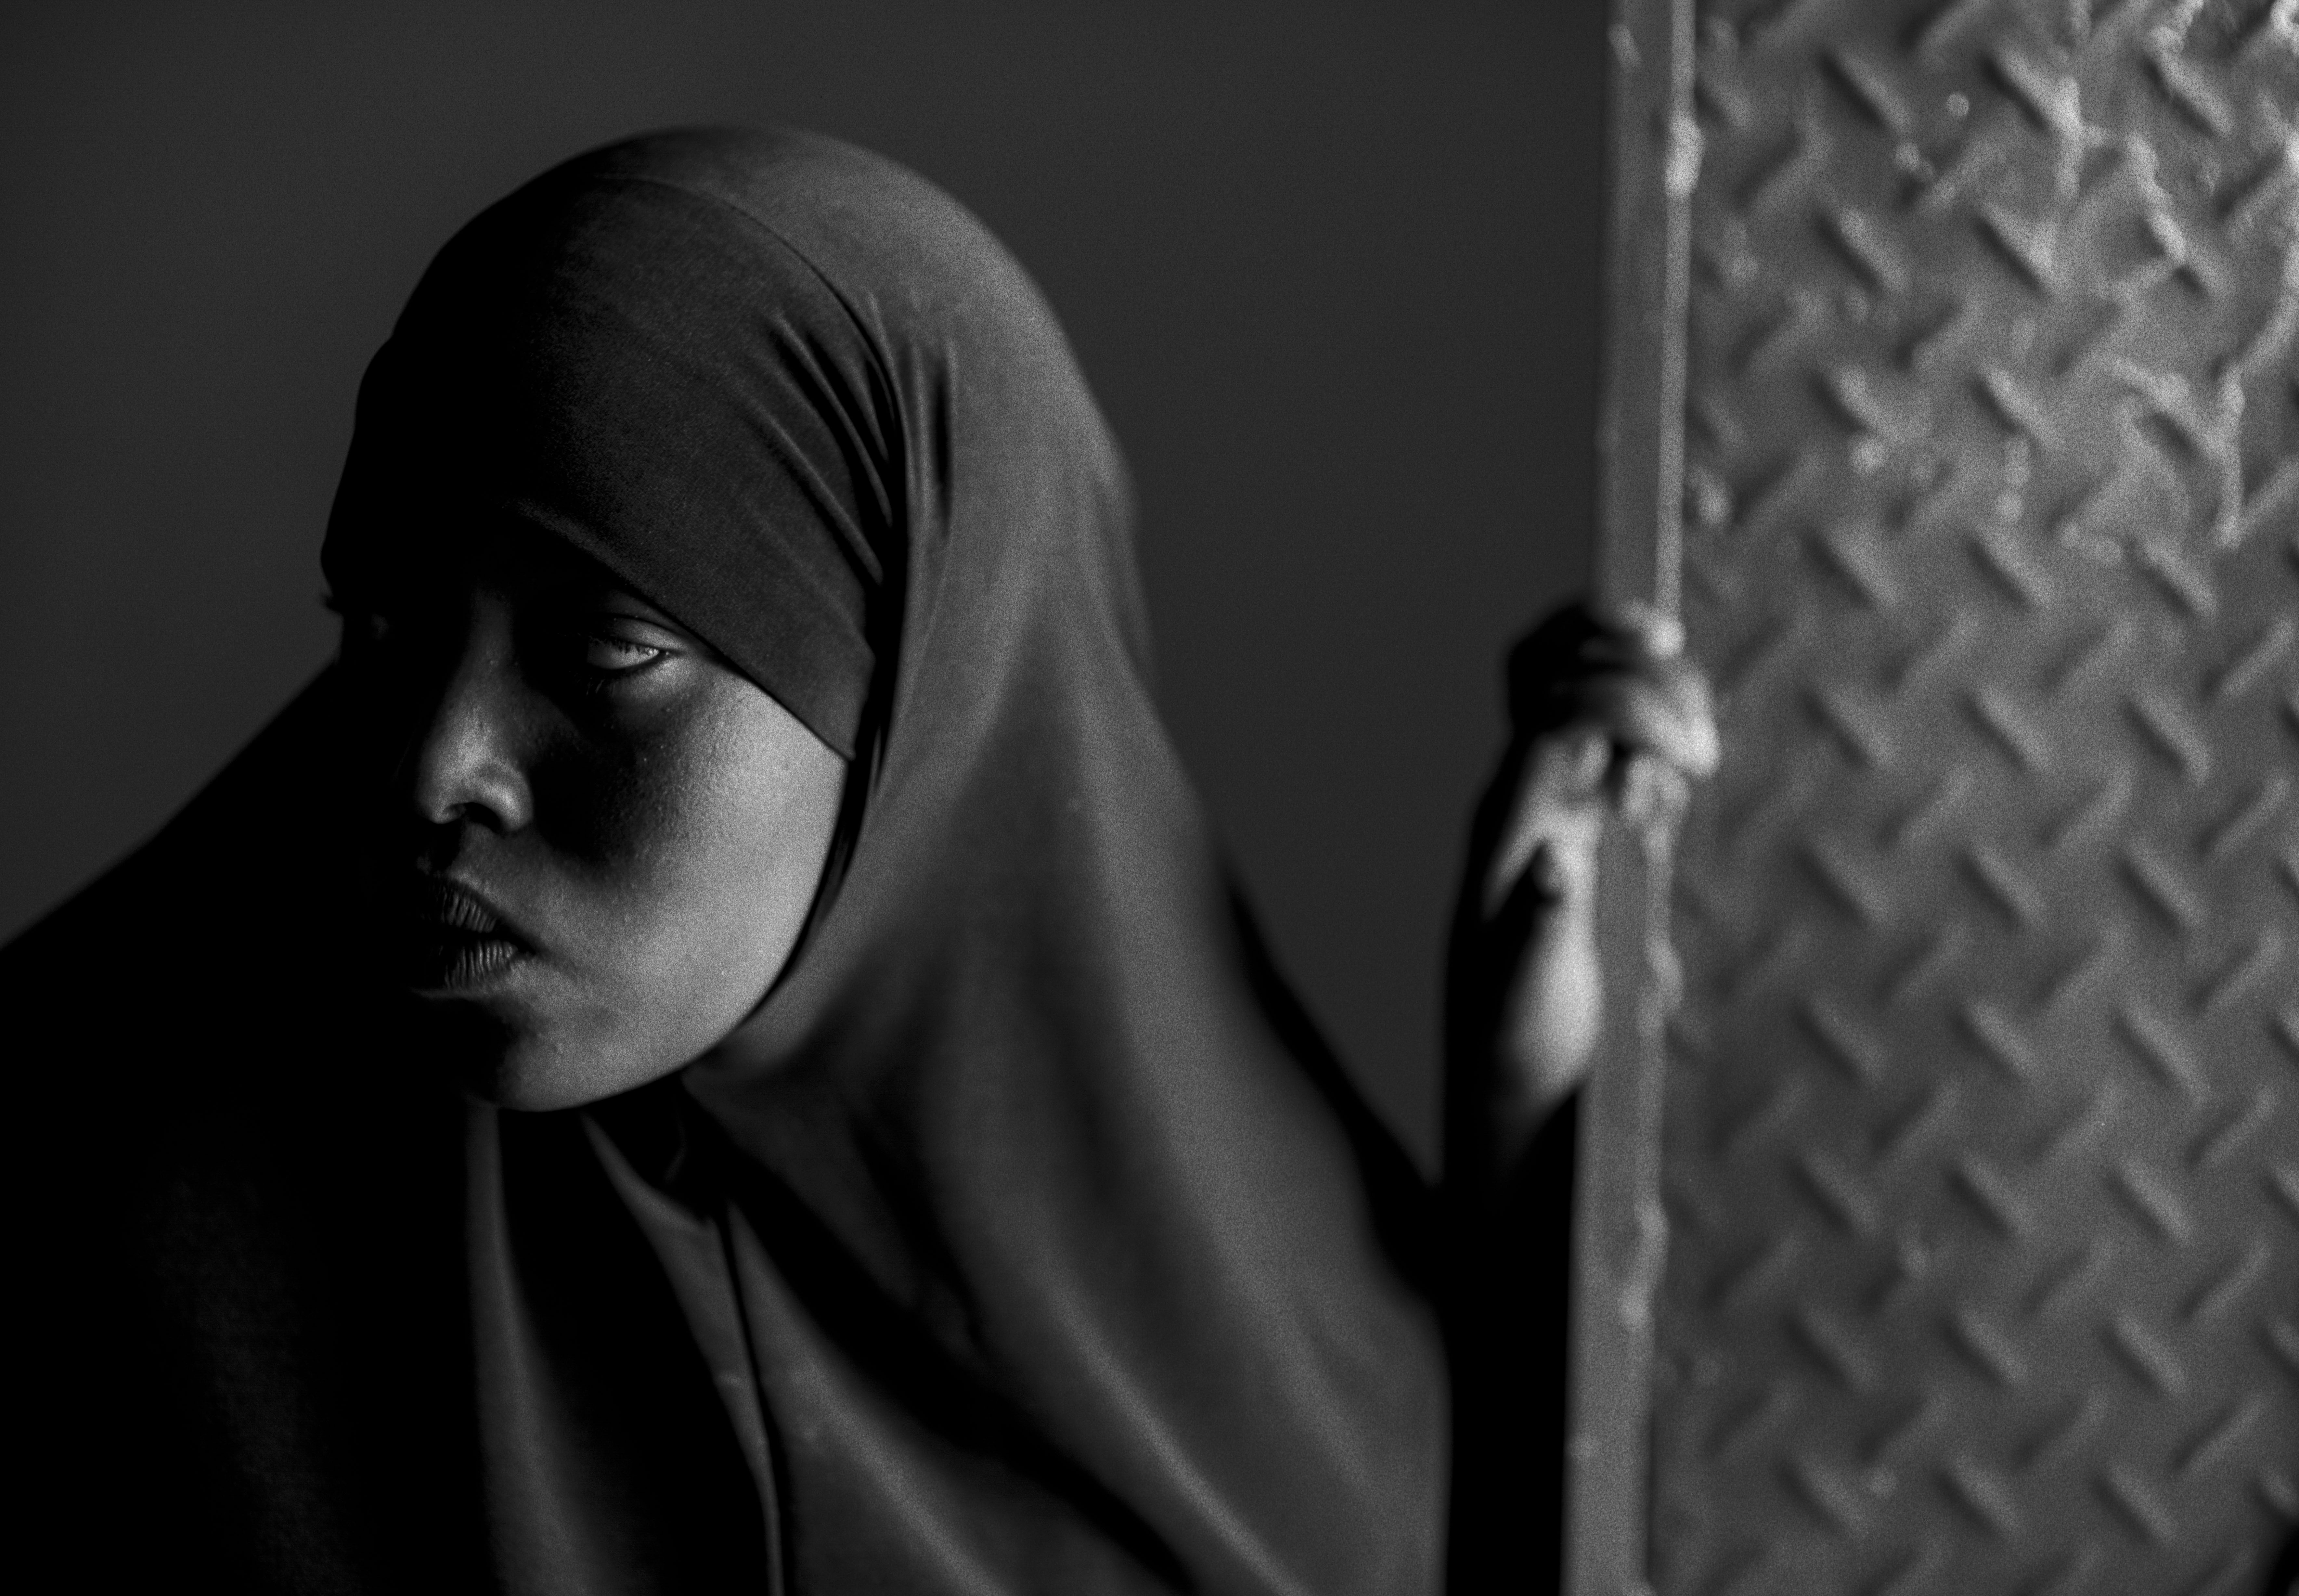 Portrait of a young woman in a maternity ward in Somaliland by Sebastian Rich for UNICEF